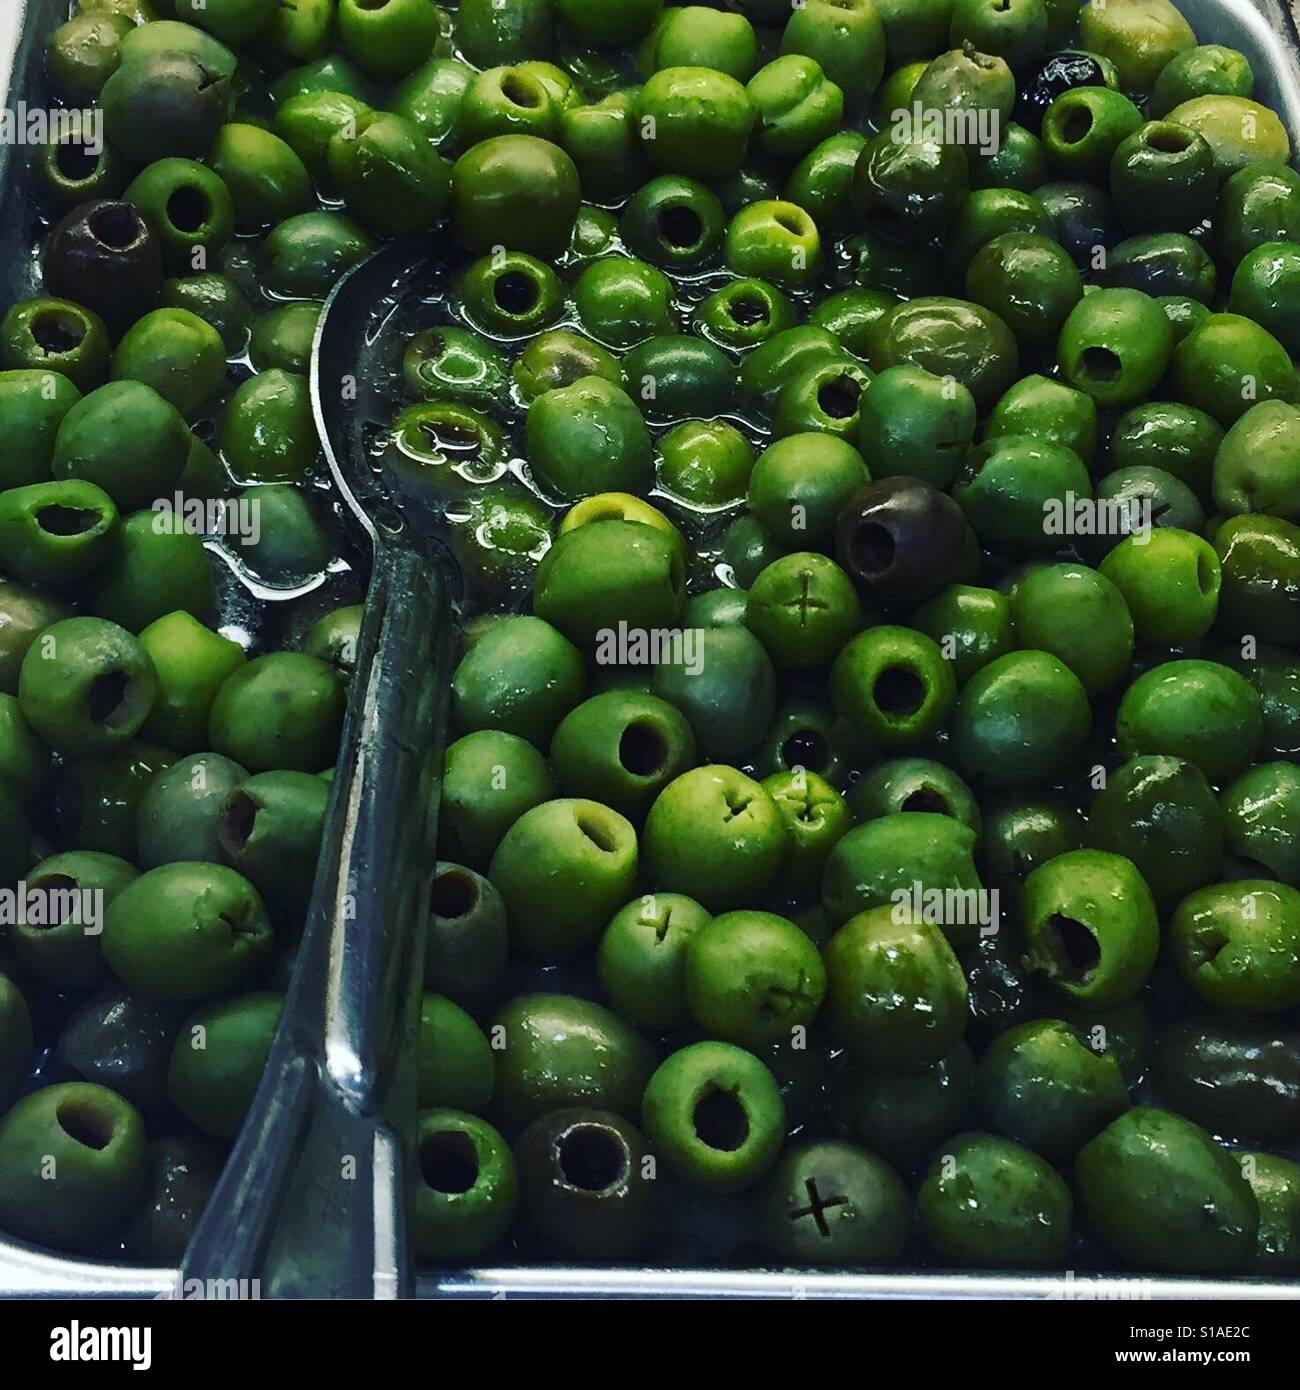 Green olives by K.R. - Stock Image